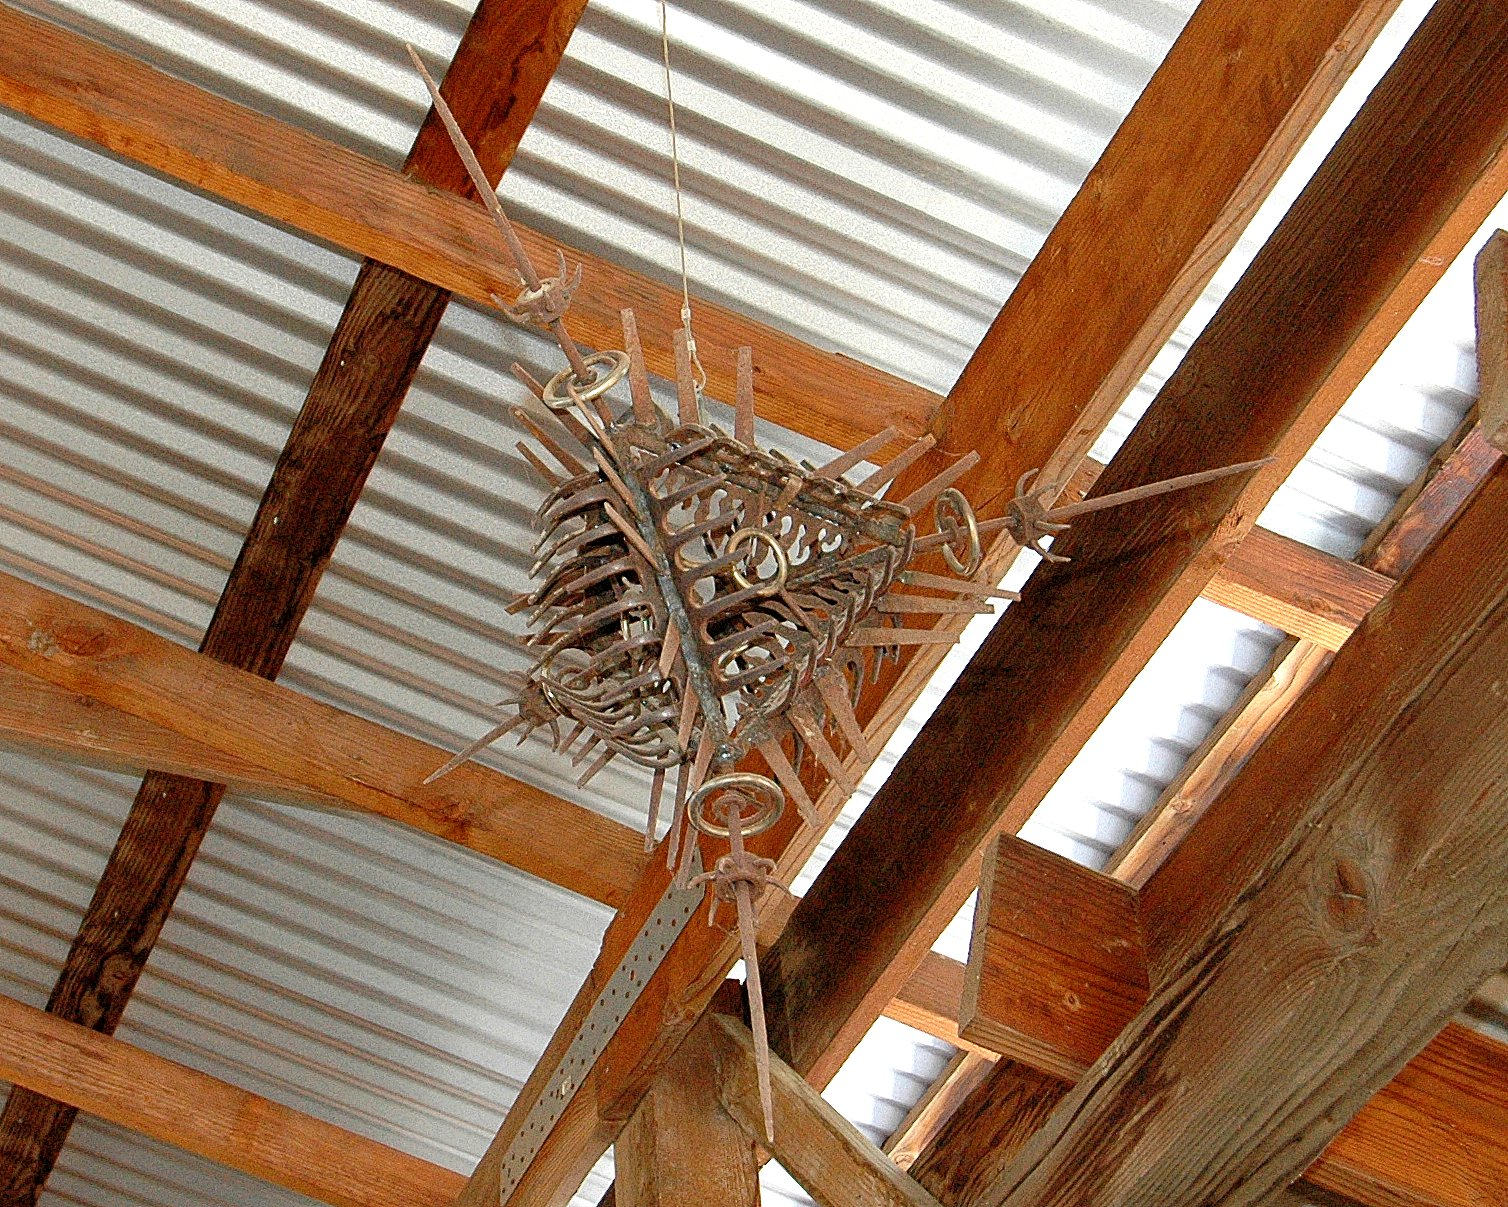 """an articulated, dense, aggressive """"Tetrahedron in Disguise"""" made of welded steel elements"""